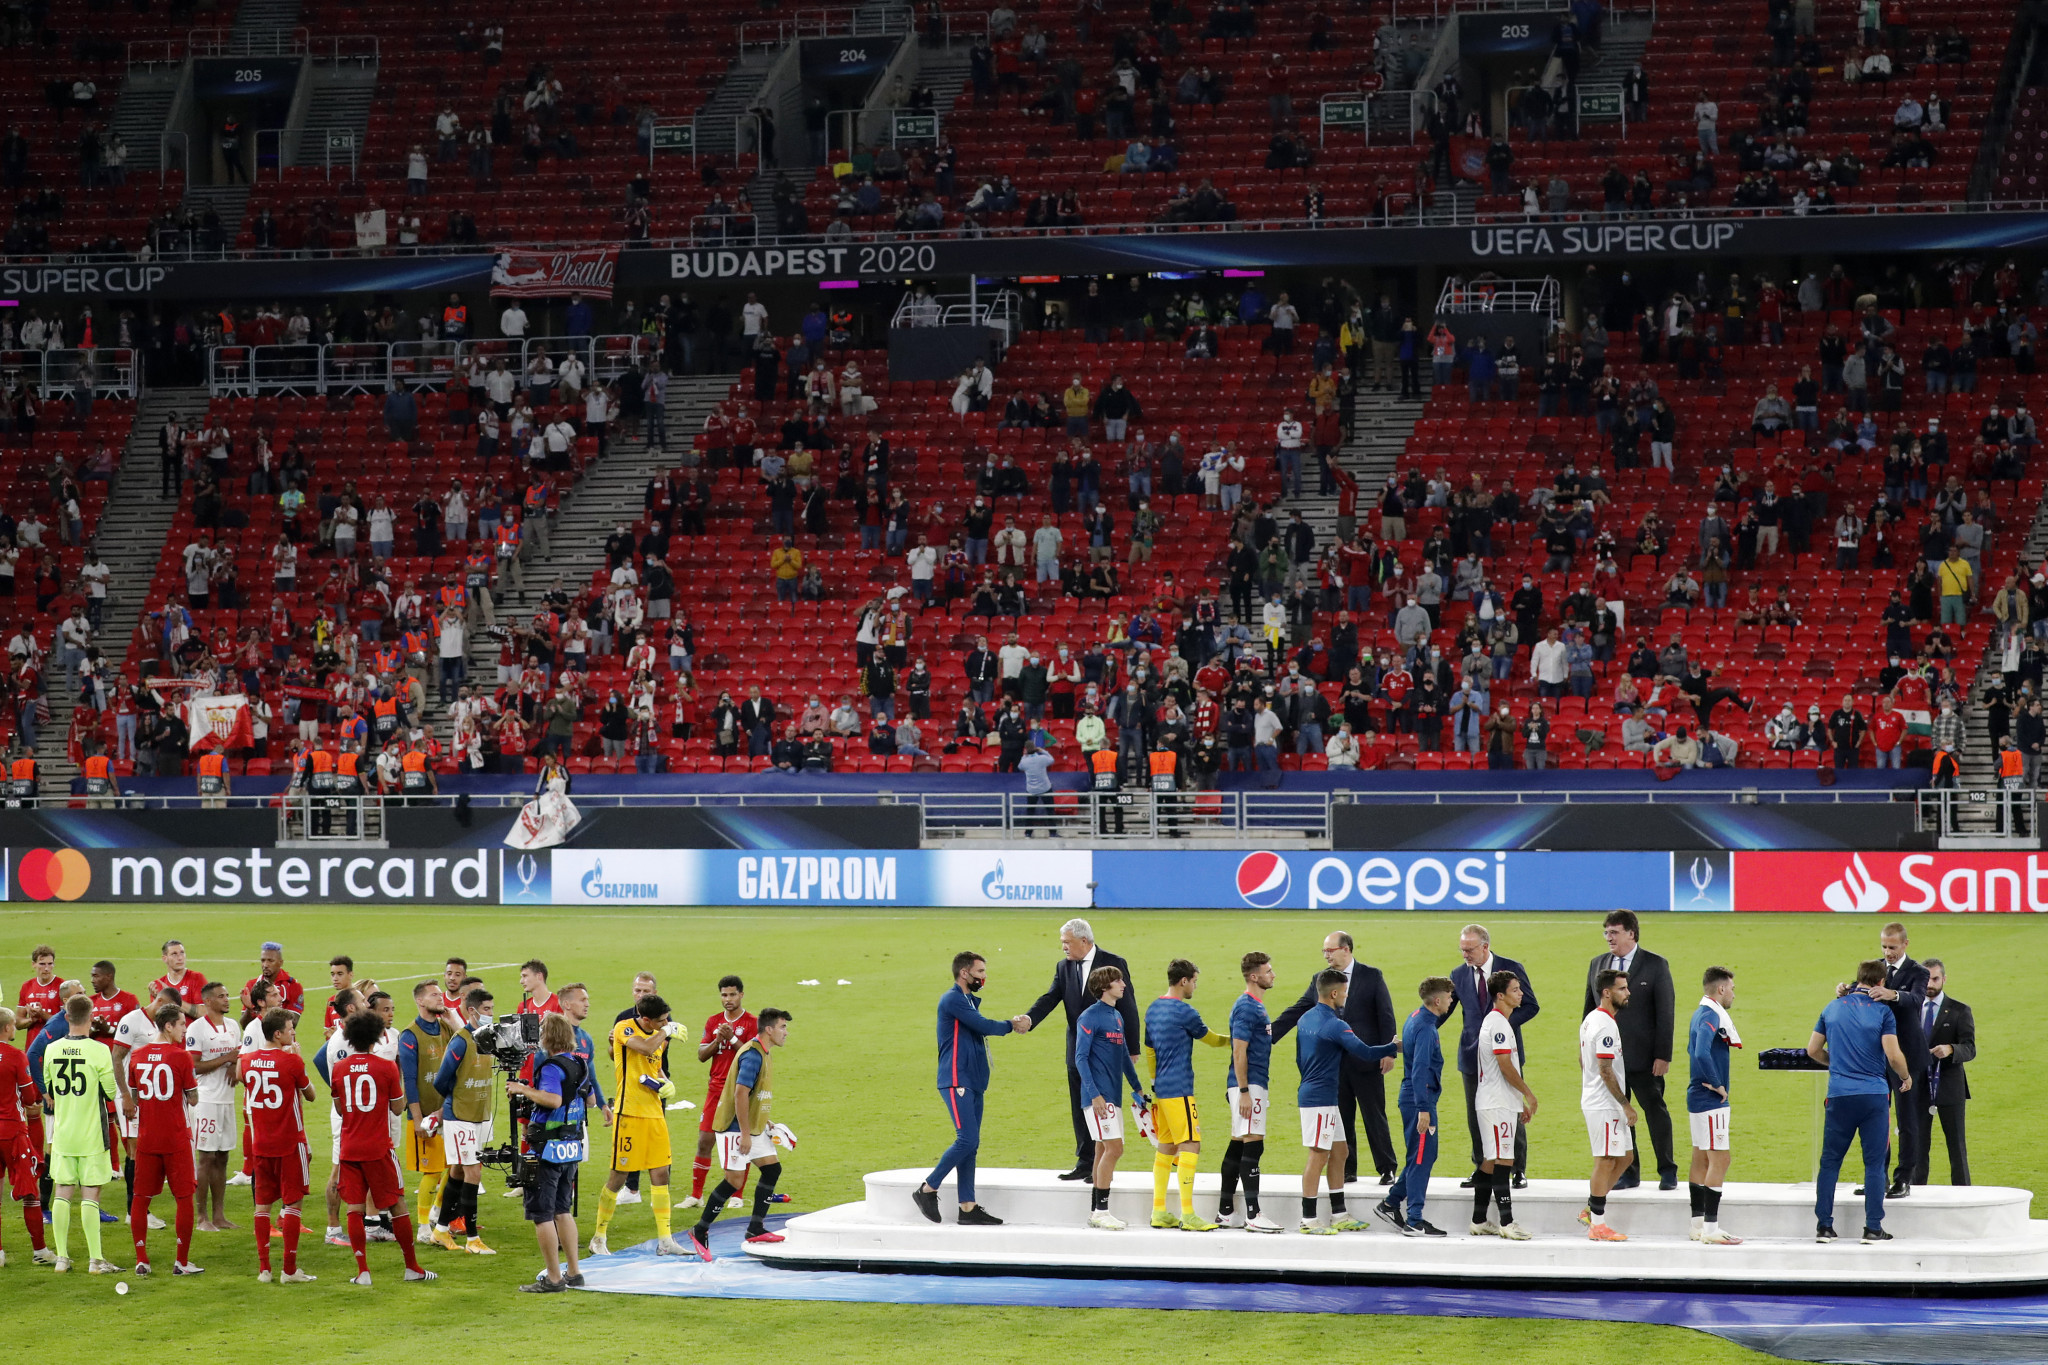 UEFA approves partial return of fans subject to approval of local authorities